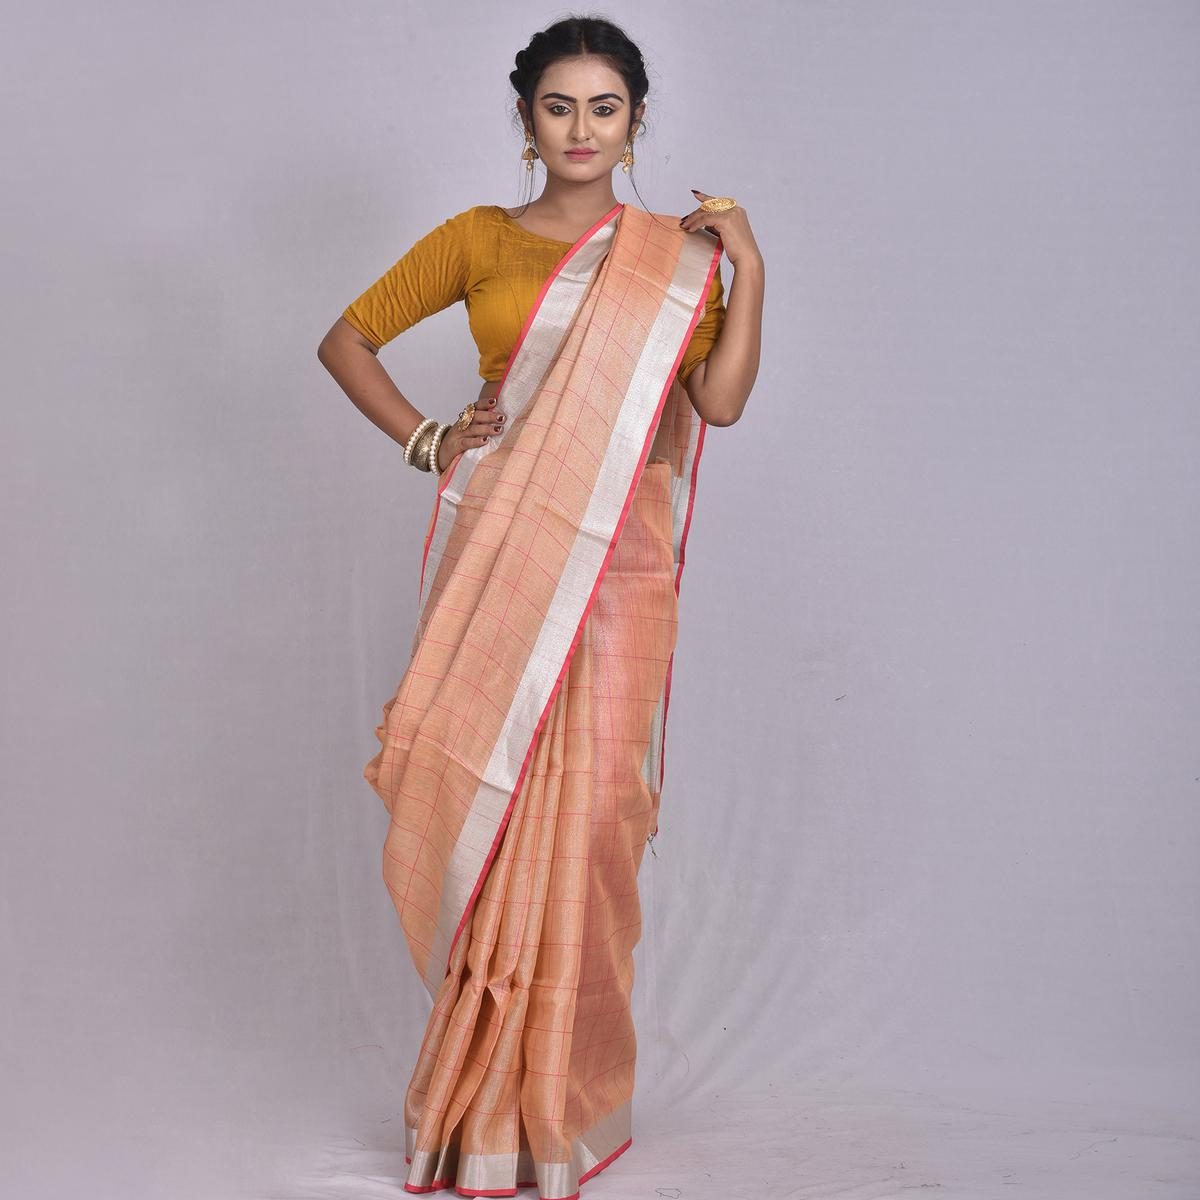 Kihums - Cantaloupe Hand Woven Tissue Linen Saree With Blouse Piece